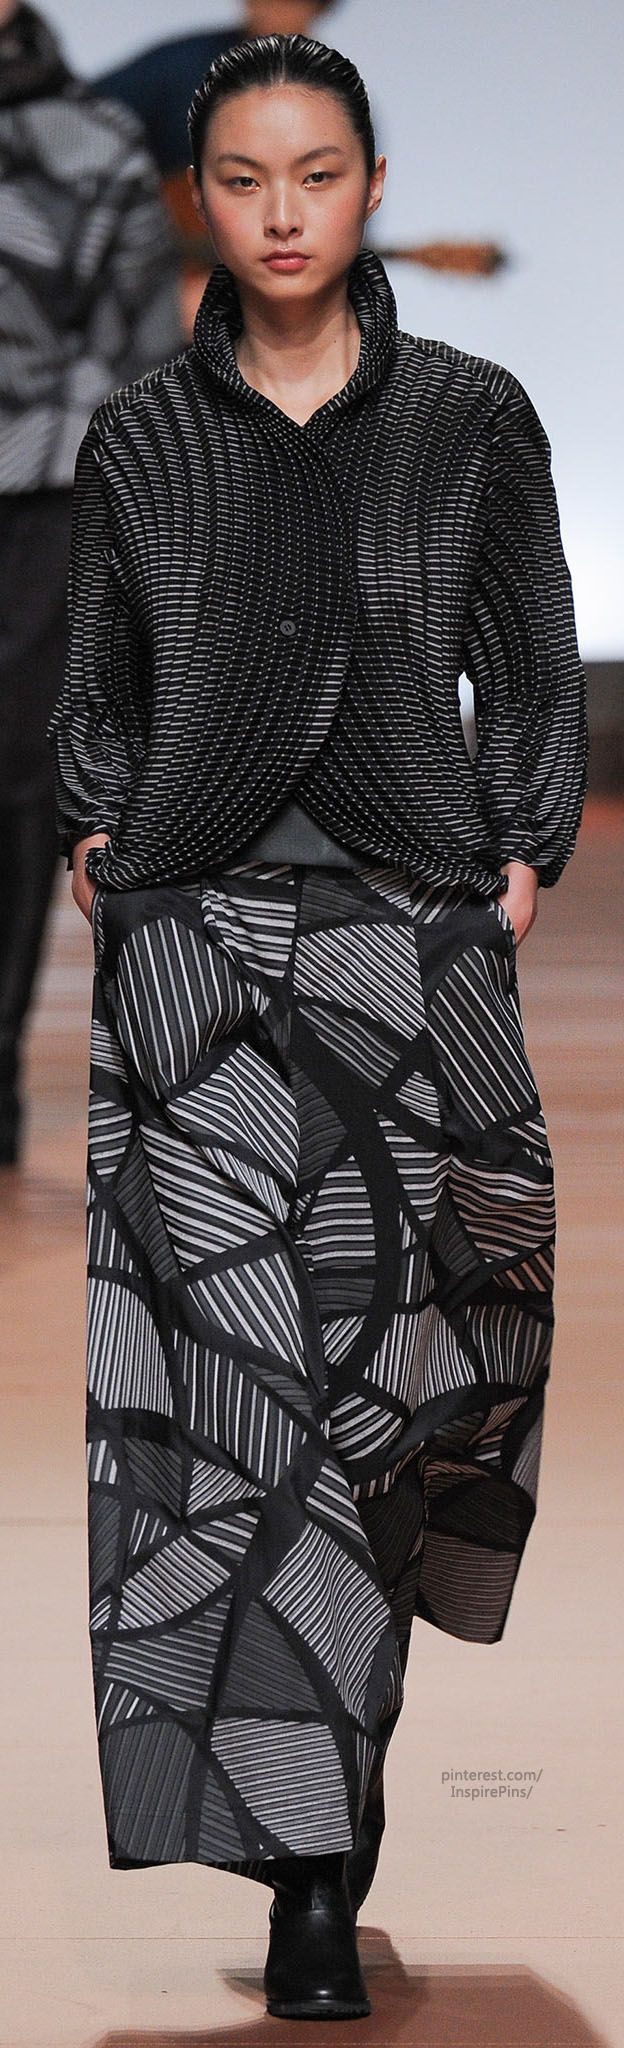 Issey Miyake Fall 2014 RTW   this belongs in fantasy fashion, i like the print on the skirt and the geometric shaping of the jacket